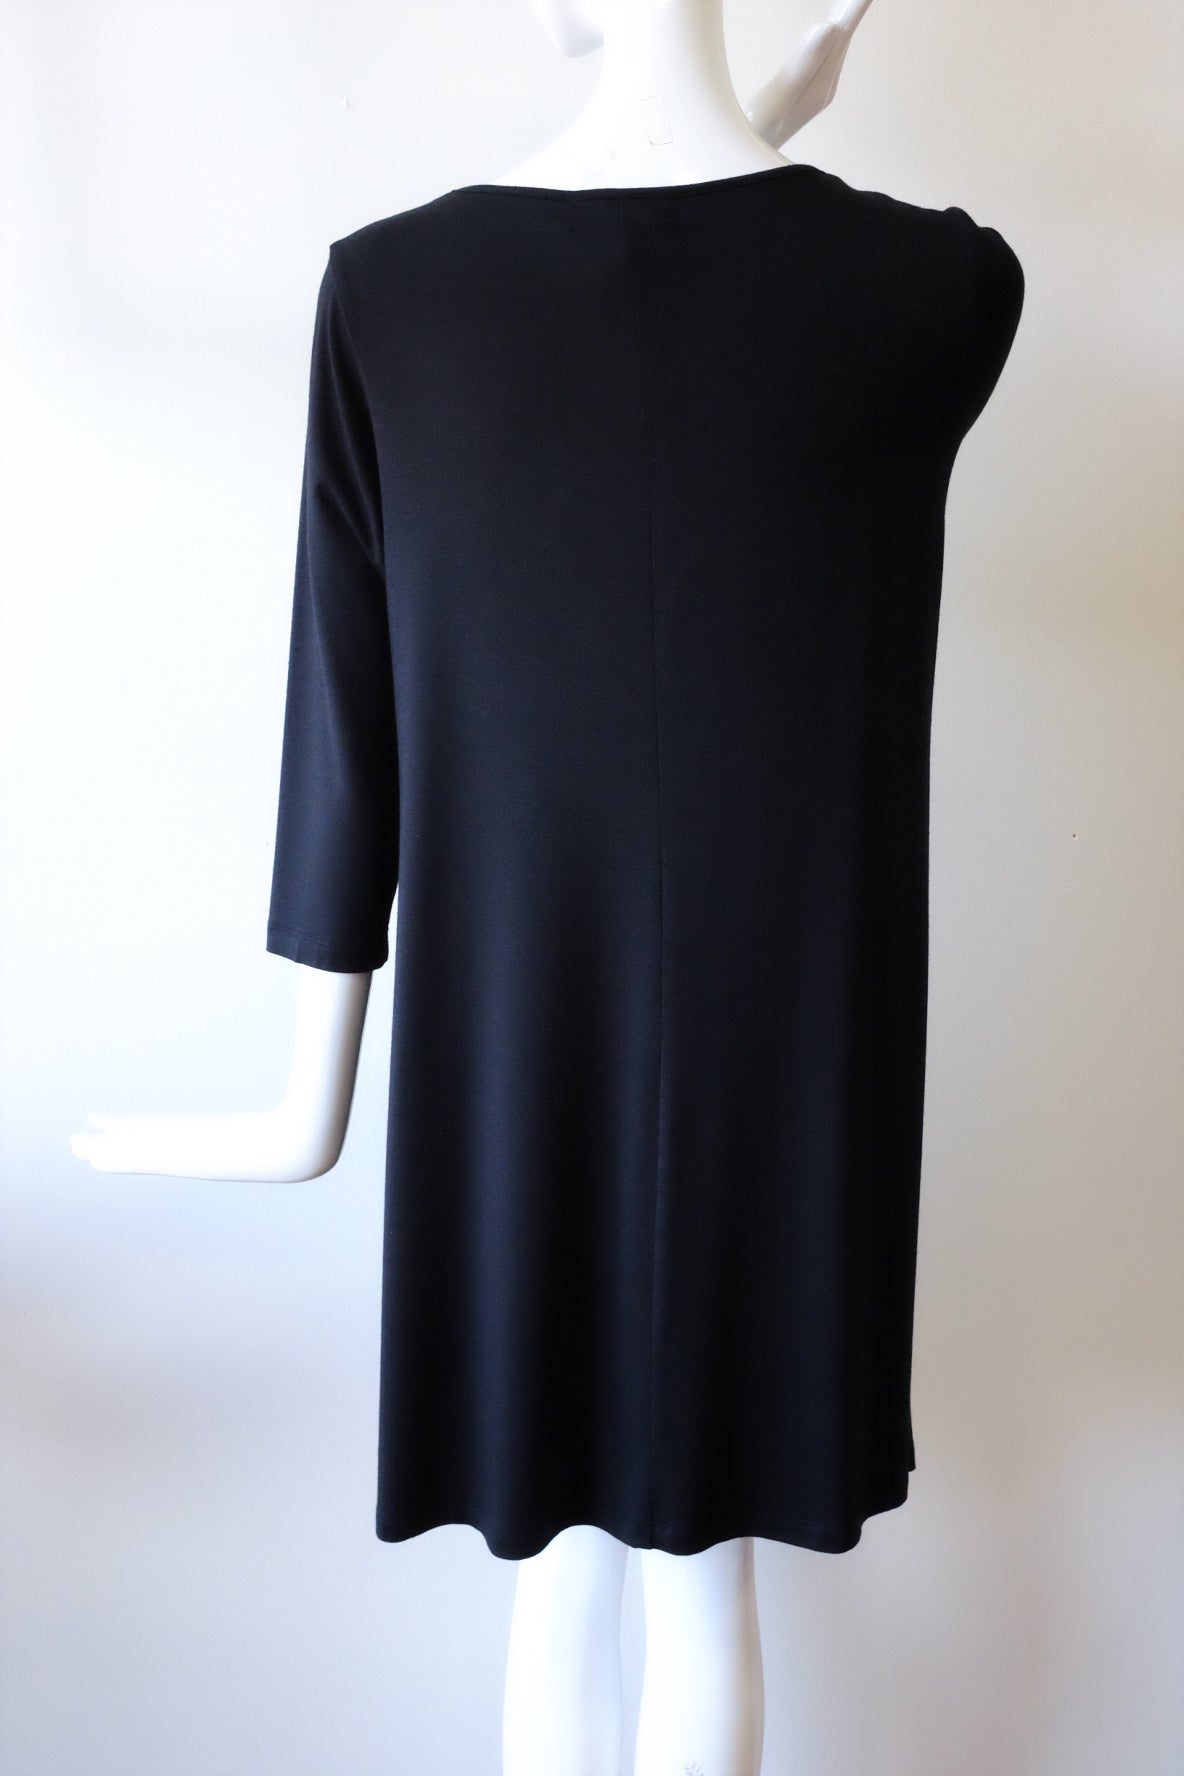 Comfy Black 3/4 Sleeve Tunic